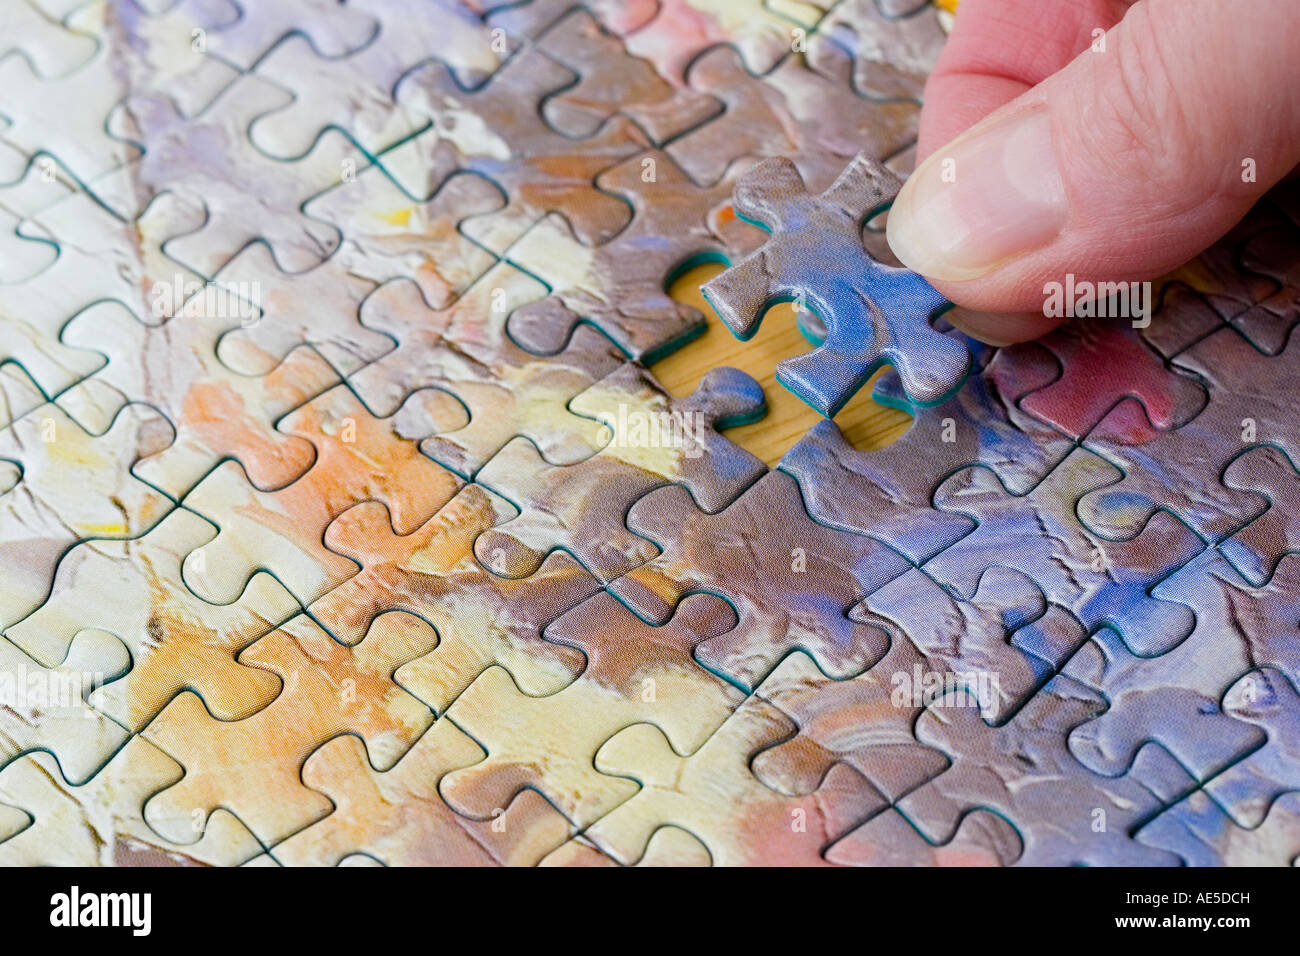 Jigsaw Puzzle Pieces Connected Together With Hand Putting In The Last Missing Piece